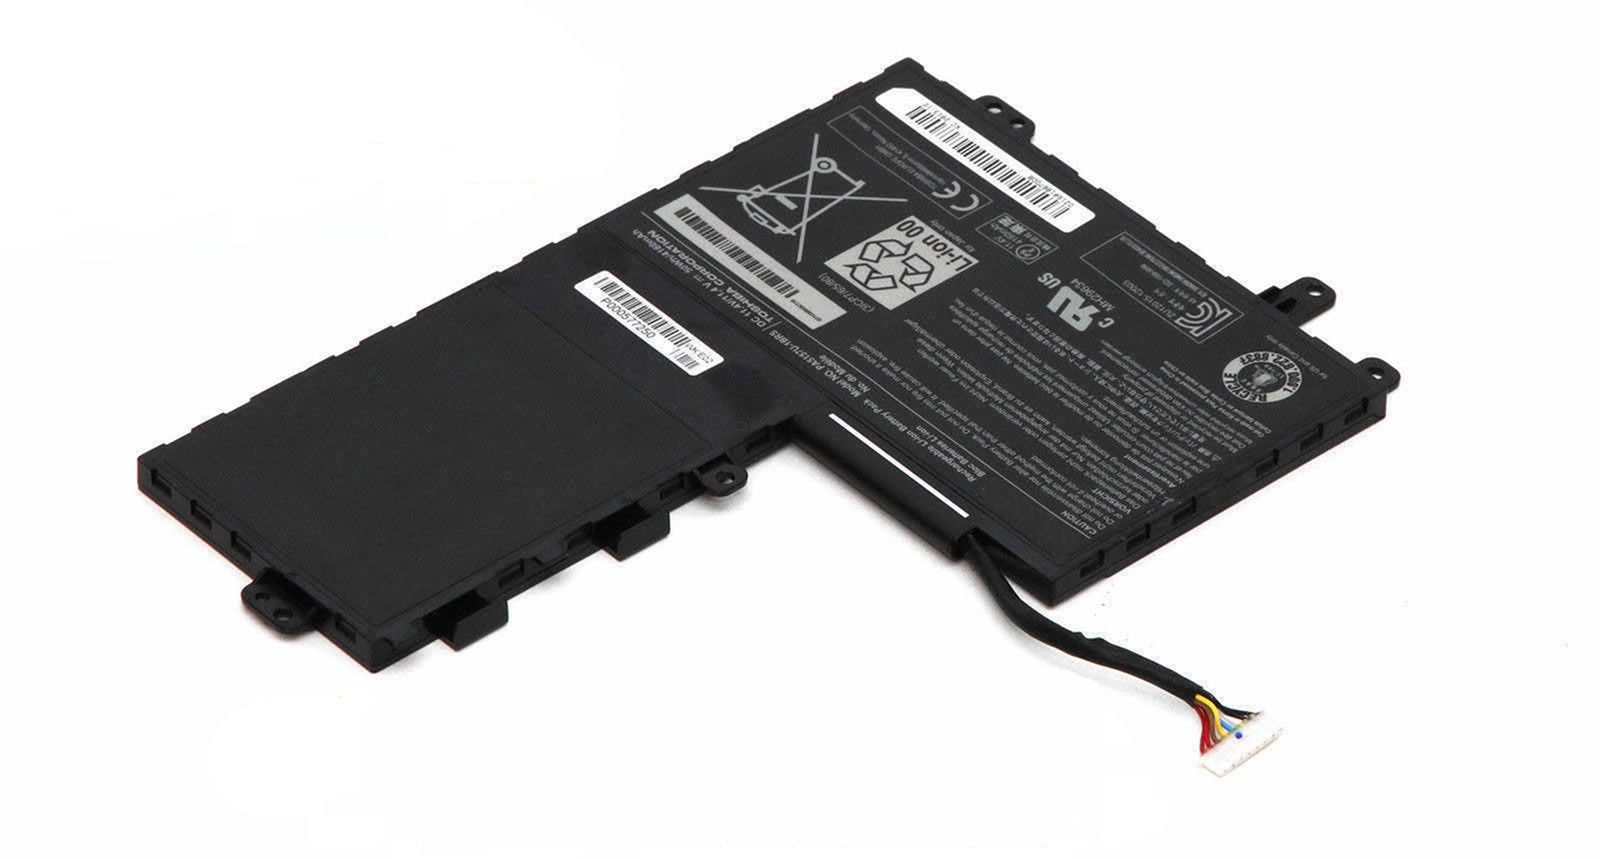 Toshiba Satellite E45T E45T-A4100 E55t-A compatible battery